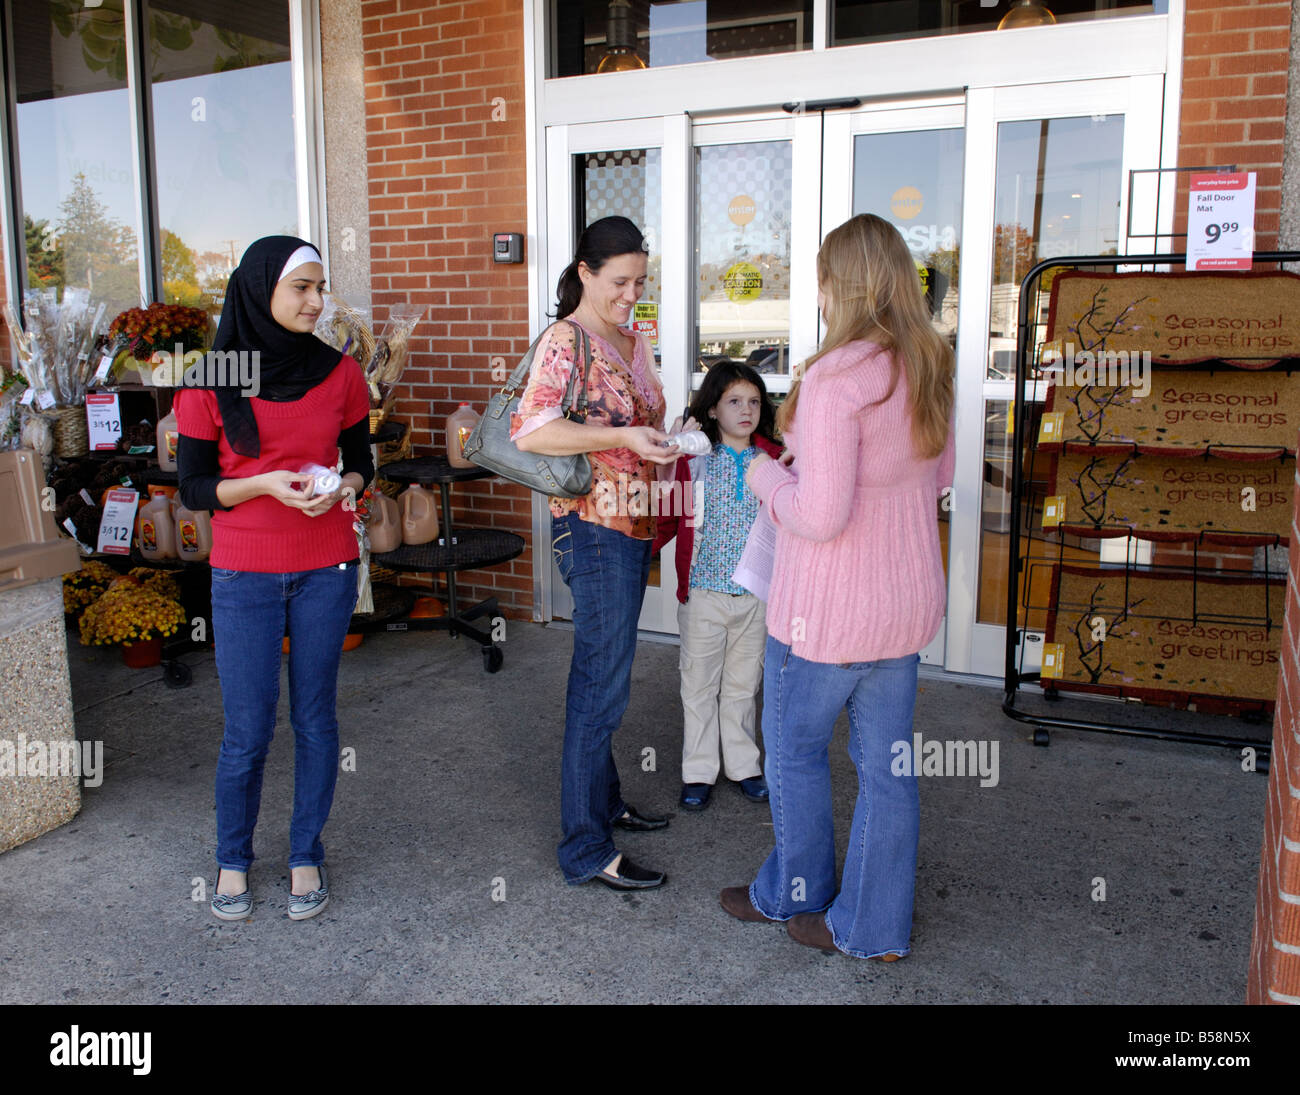 Teenage girls giving away free energy efficient light bulbs to people for an environmental community service project - Stock Image